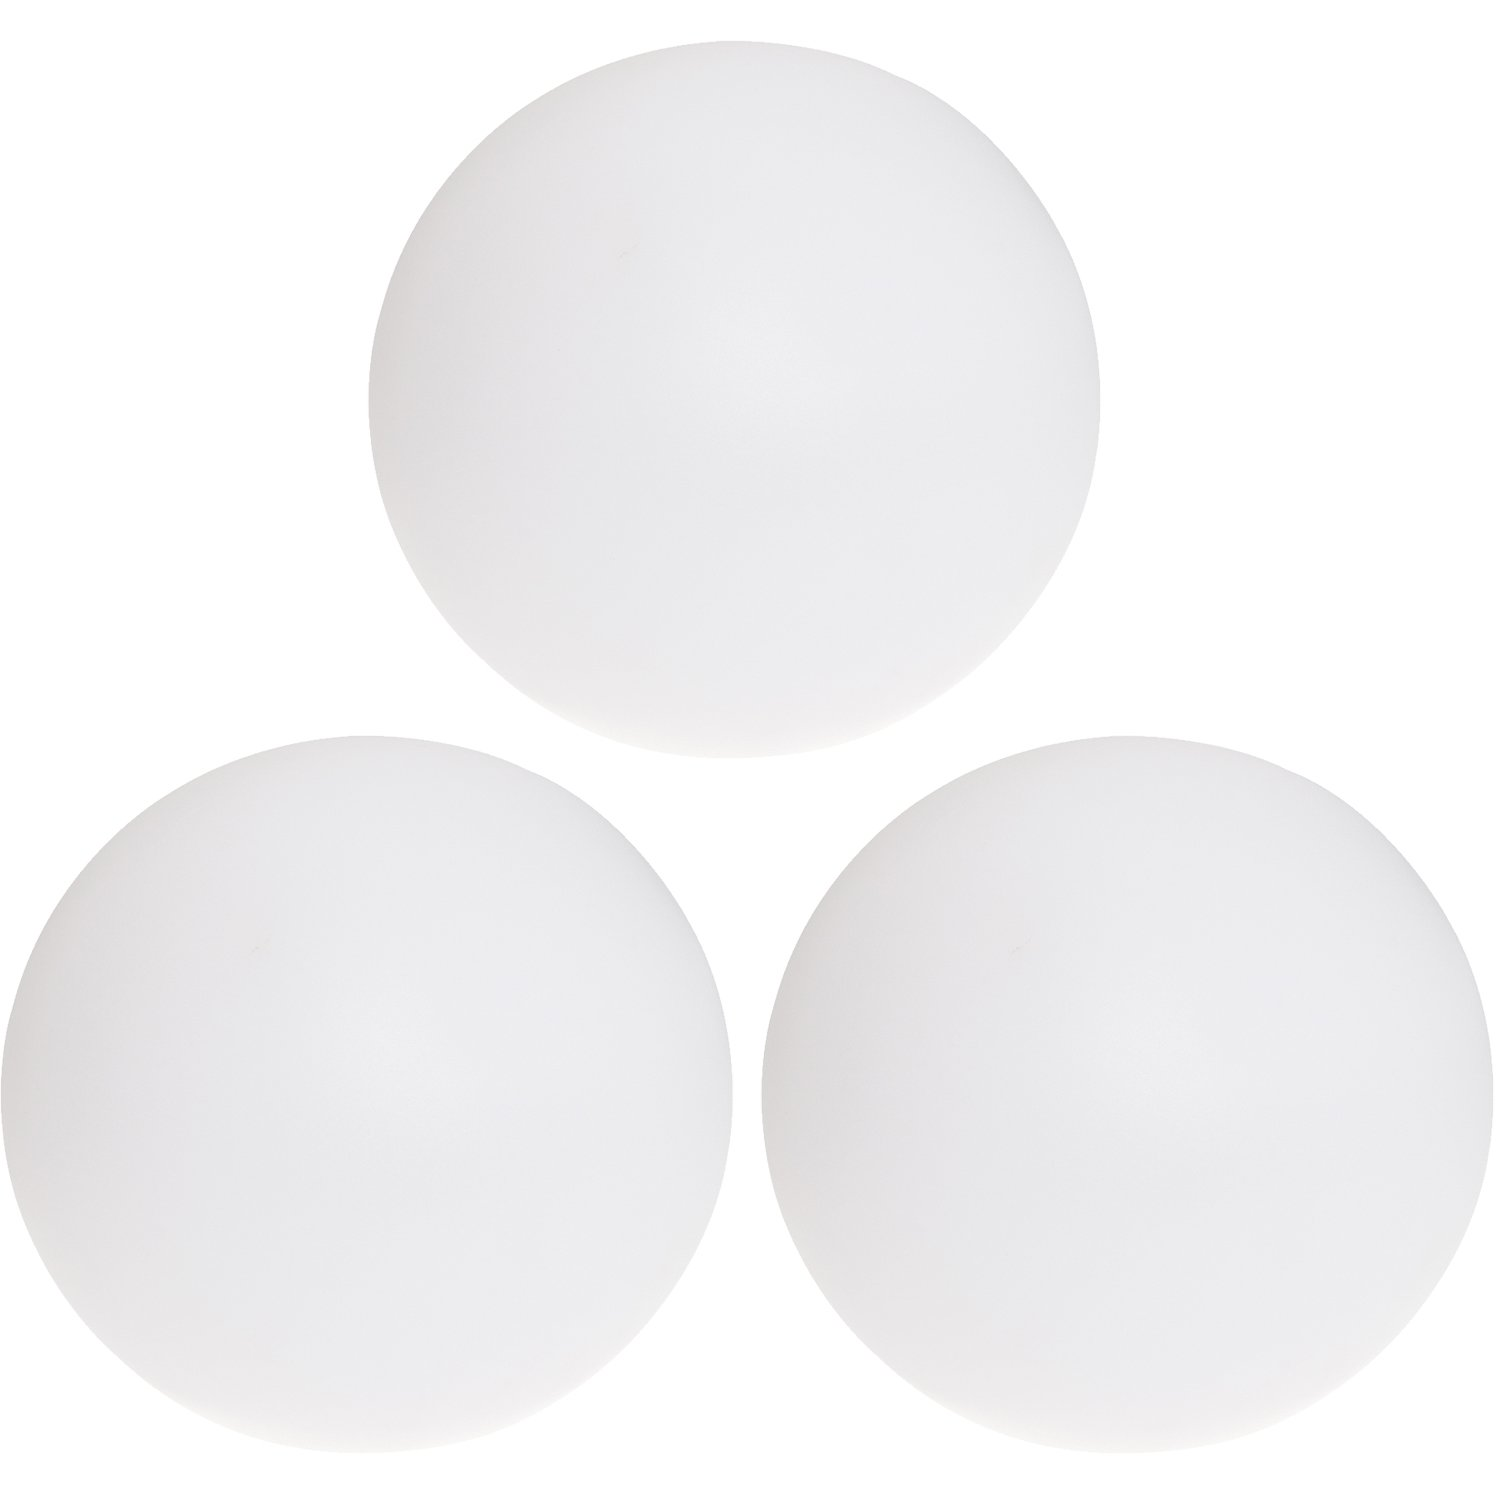 GreenLighting White Color Changing 3W Floating LED Ball Light (200mm, 3 Pack)